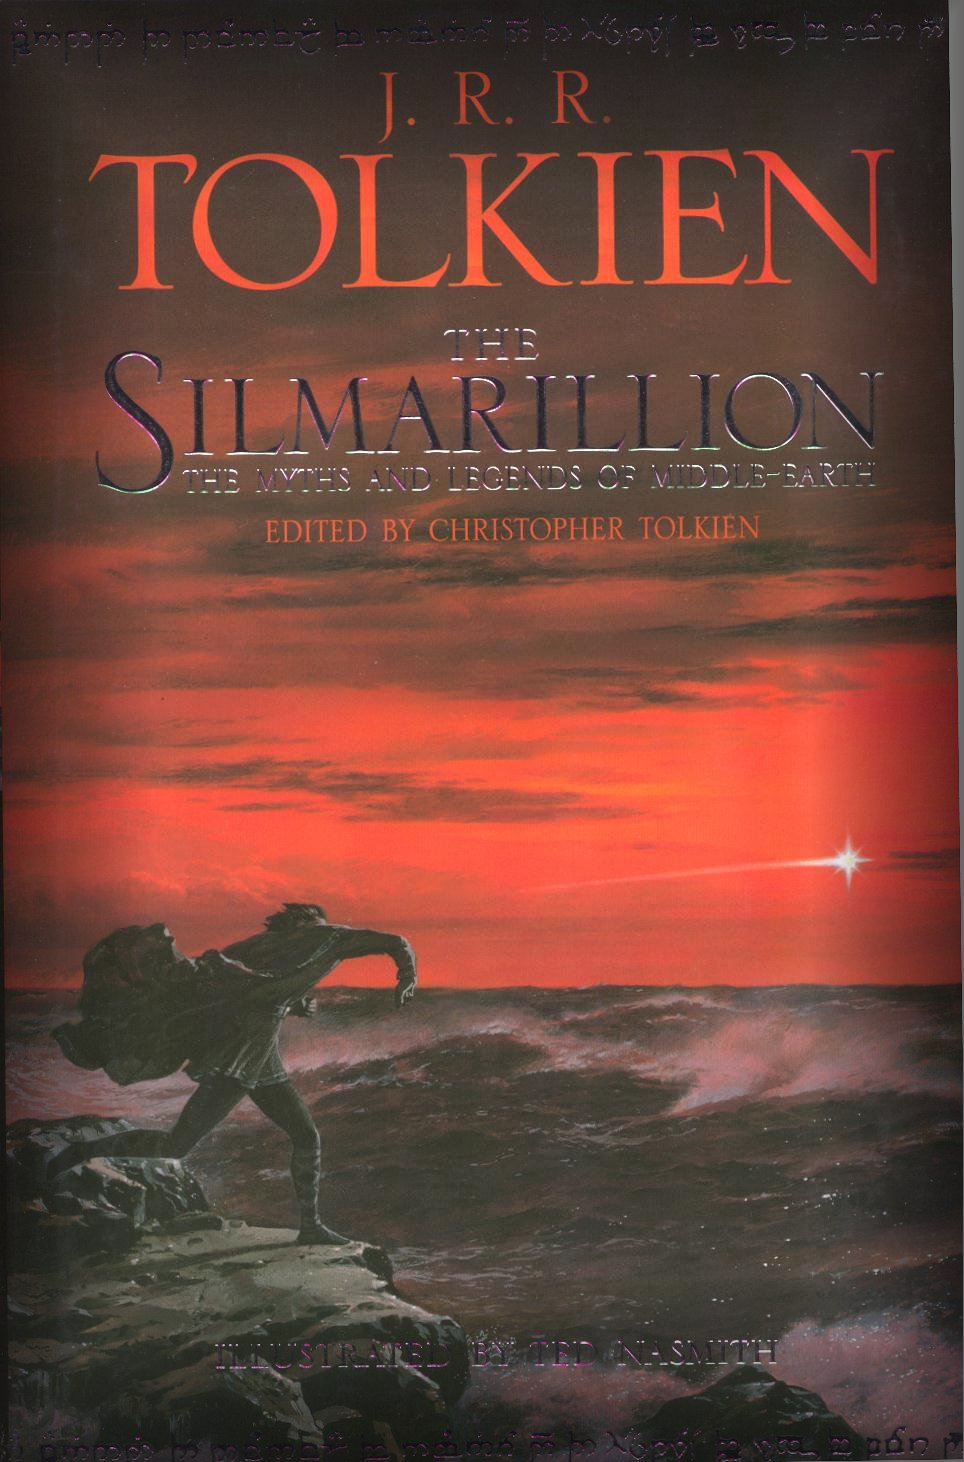 Couverture du Silmarillion par Ted Nasmith